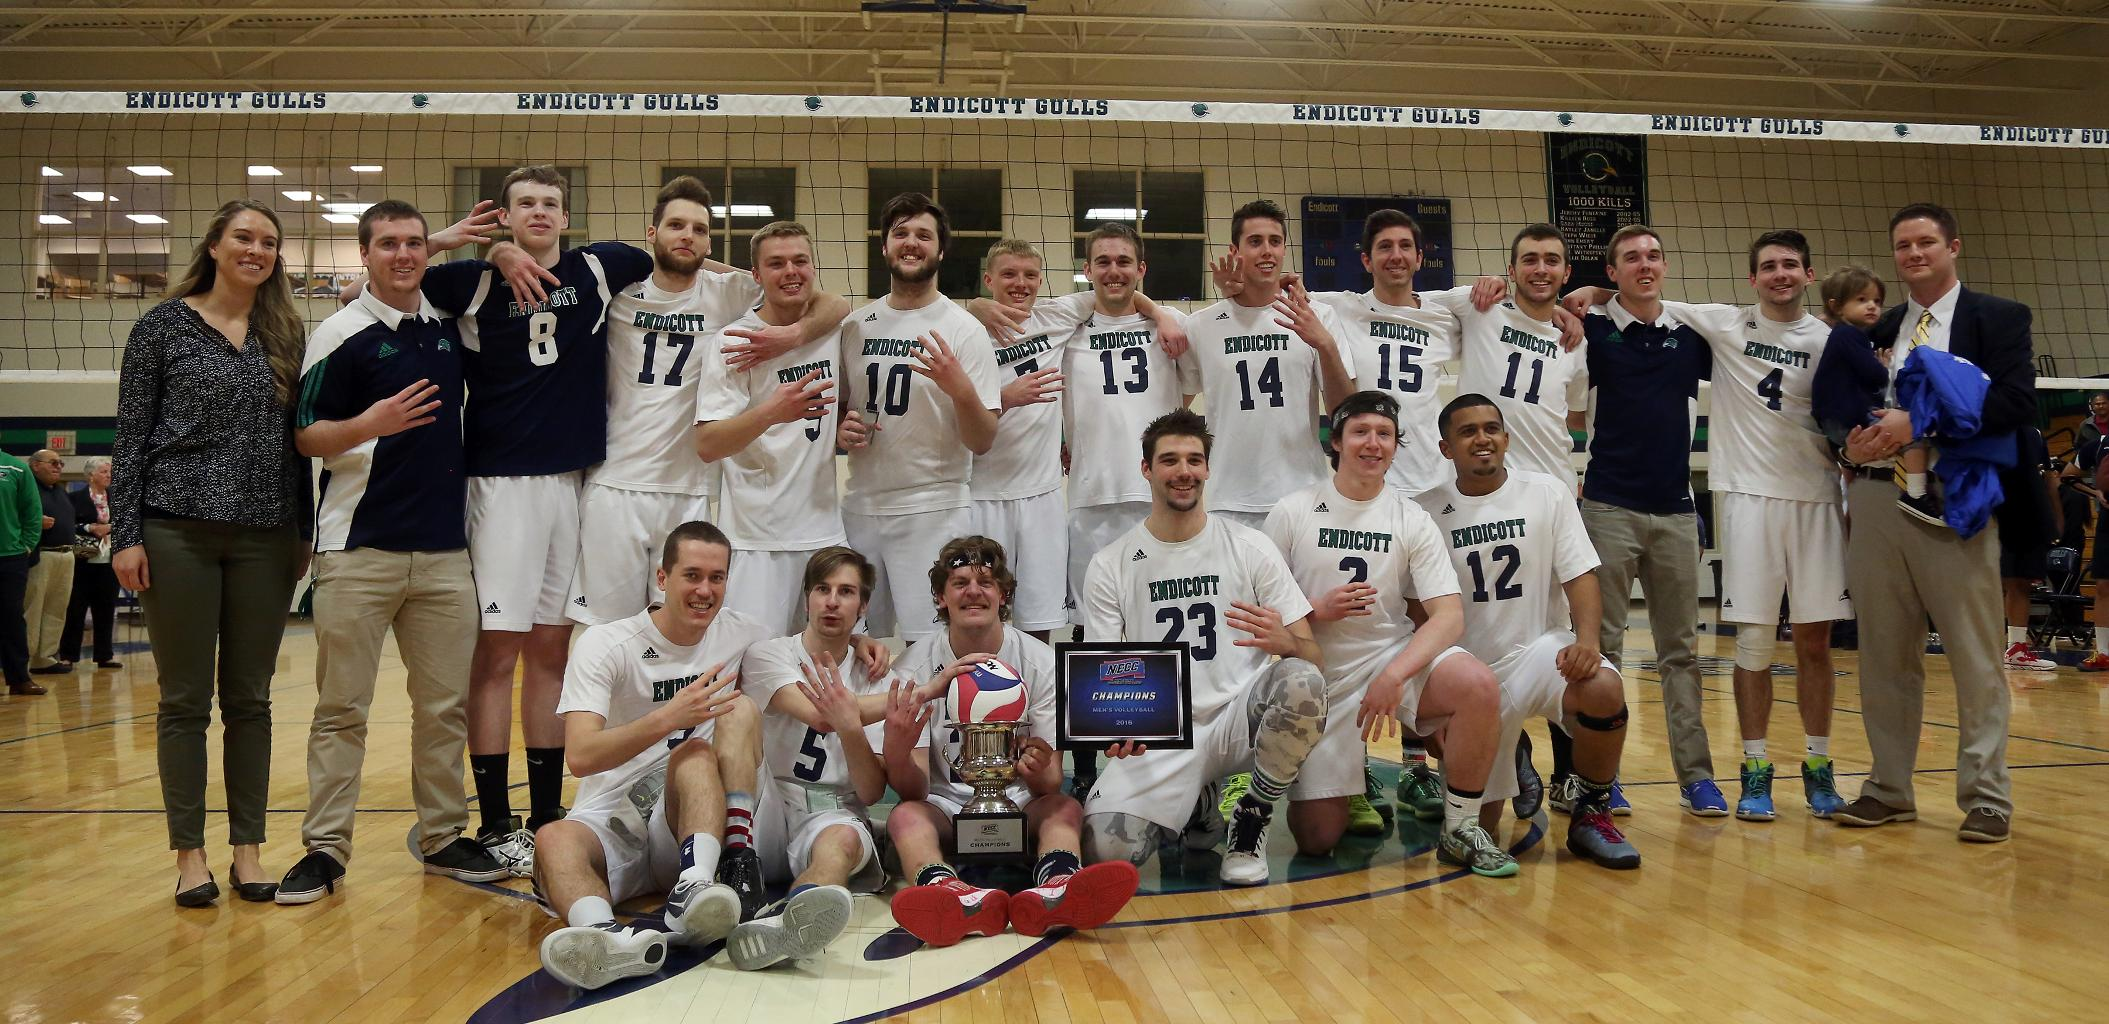 #1 Endicott Completes The Four-Peat Vs. #3 Daniel Webster in Men's Volleyball